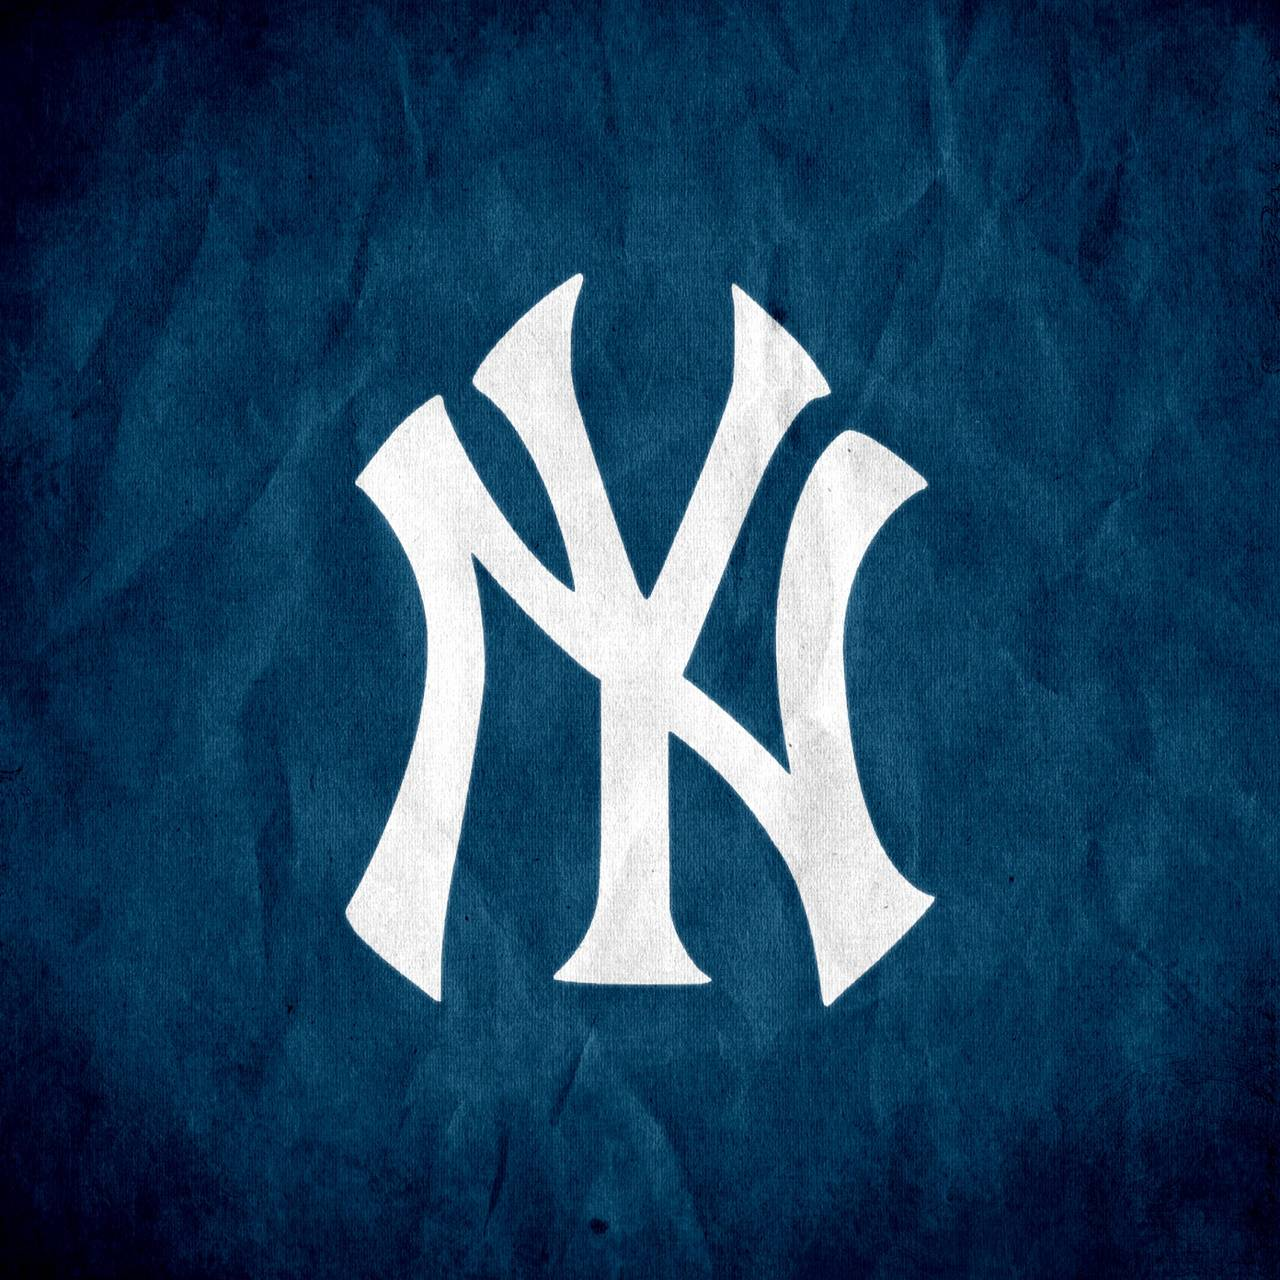 New York Yankees Wallpaper By Baddelta 19 Free On Zedge